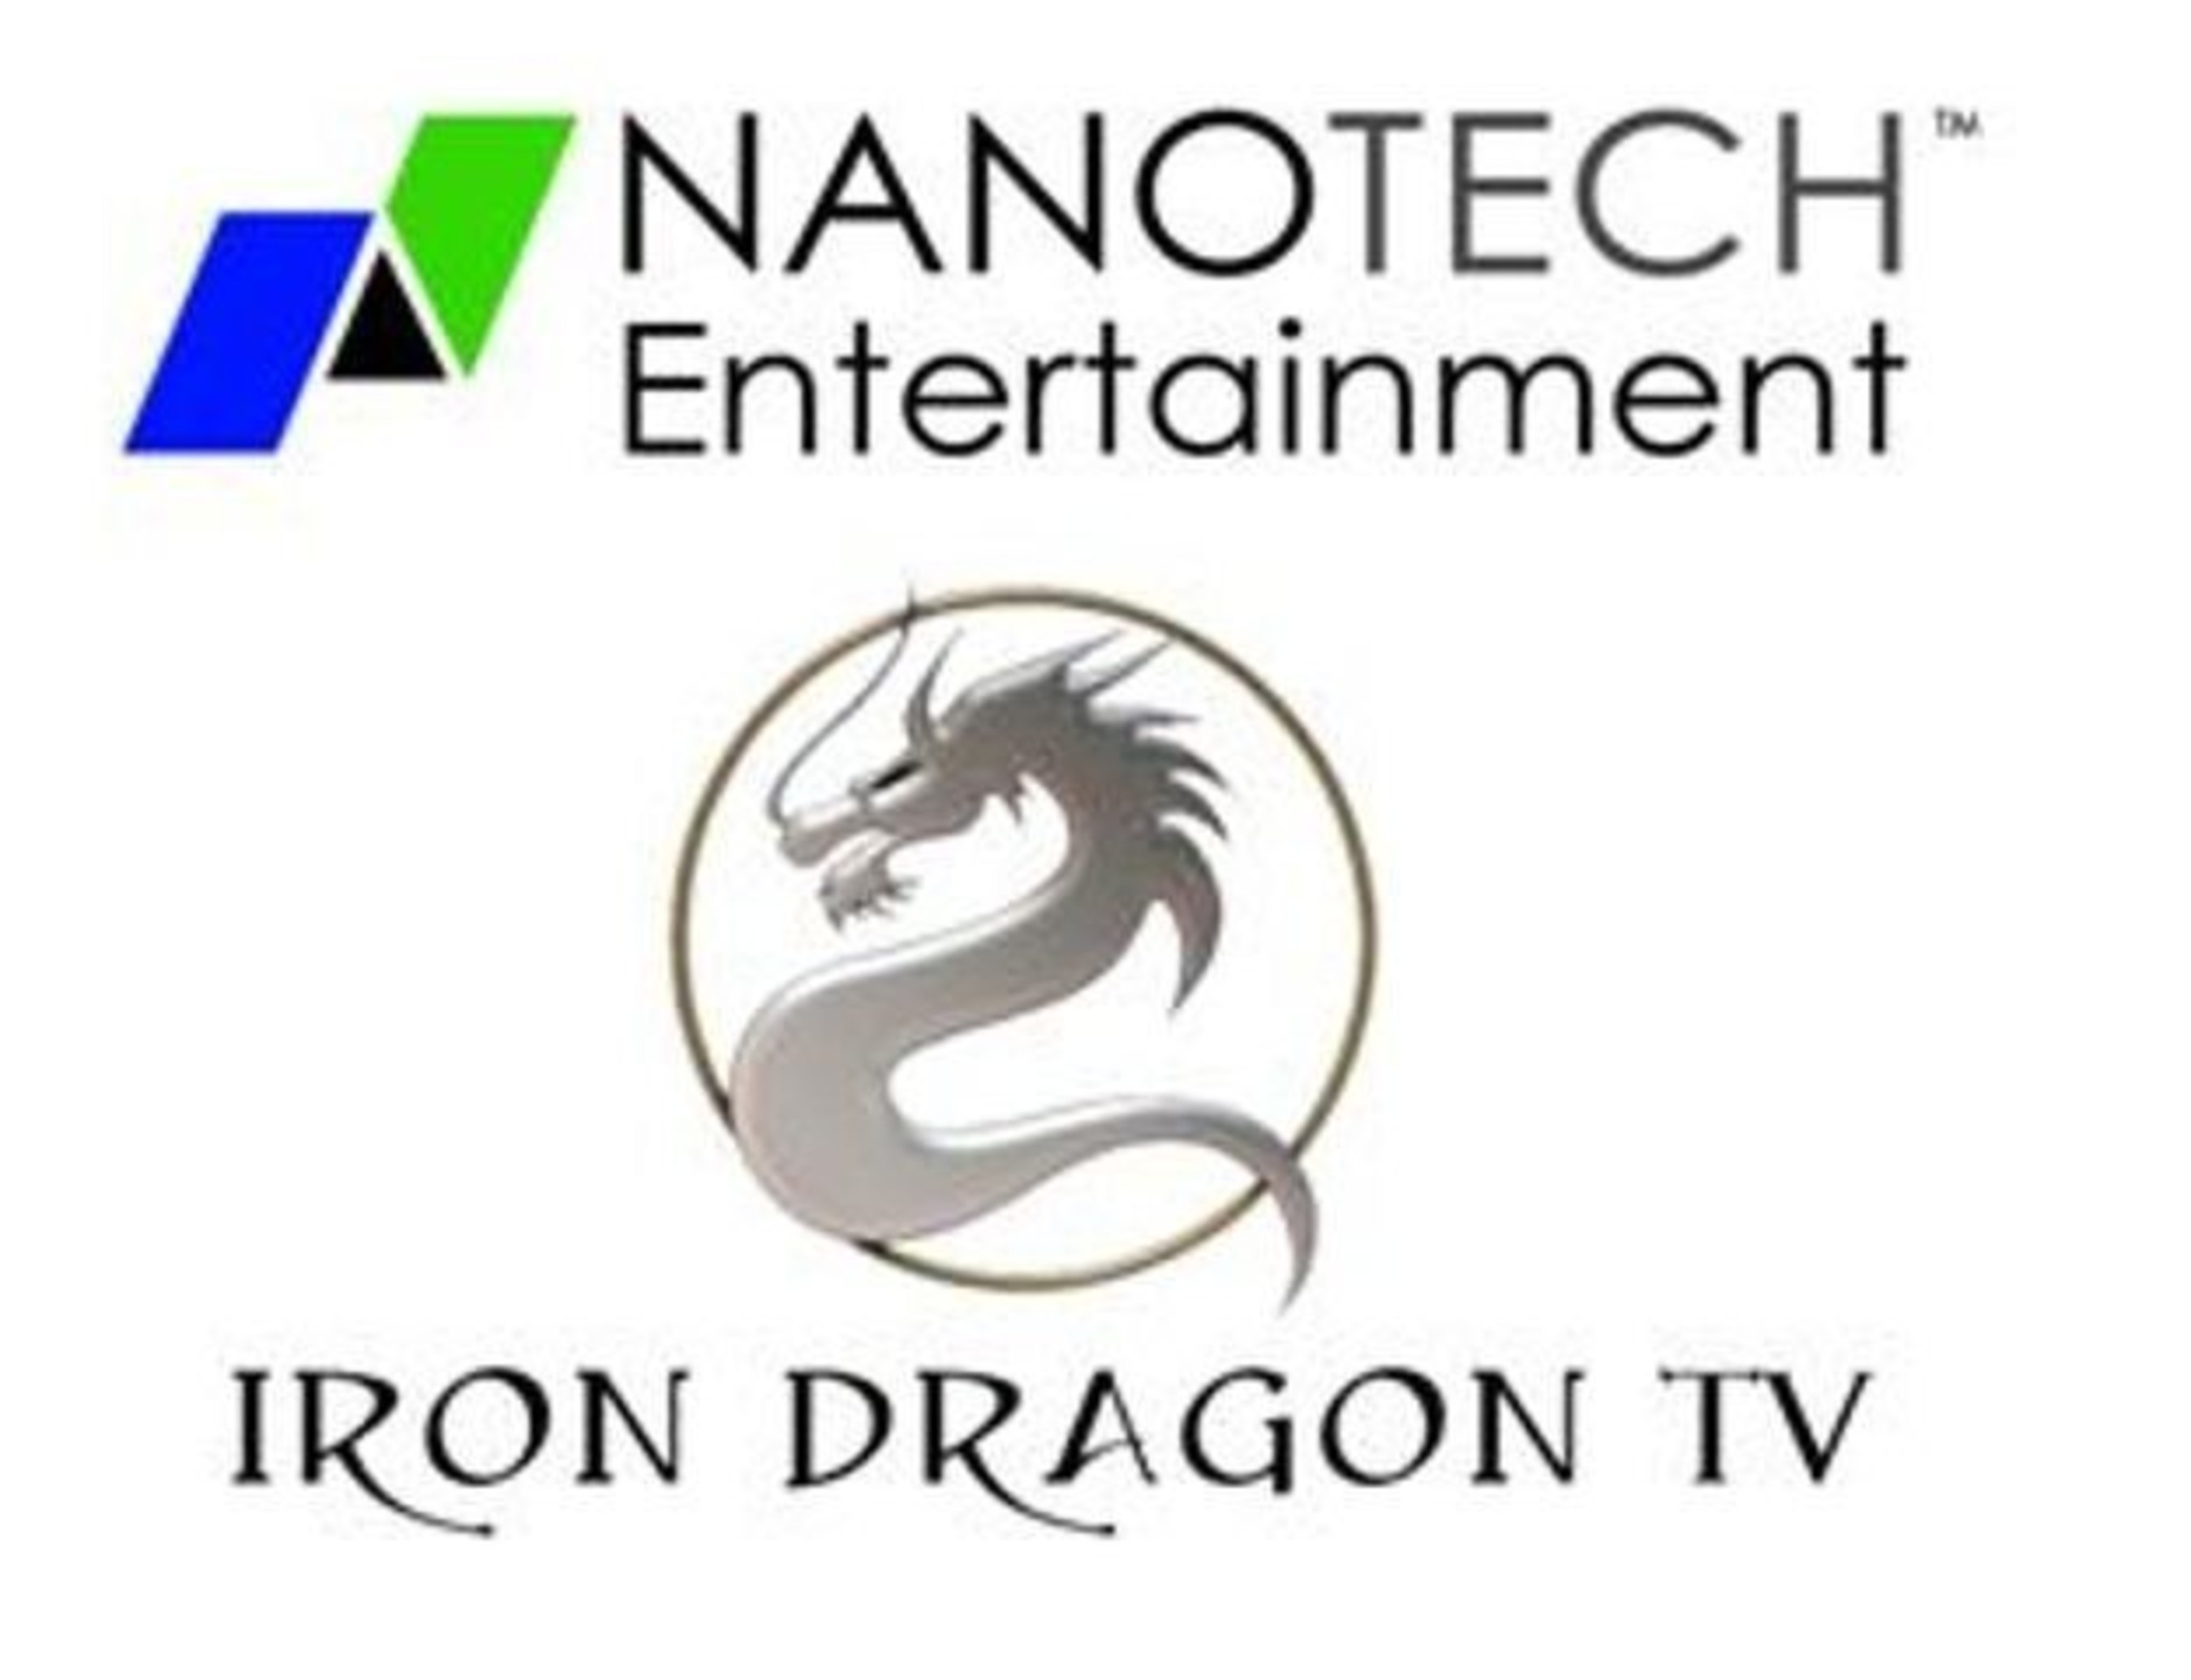 NanoTech's Iron Dragon TV Launches with Live Streaming Event Hosted by Tim Kennedy and Guy Mezger